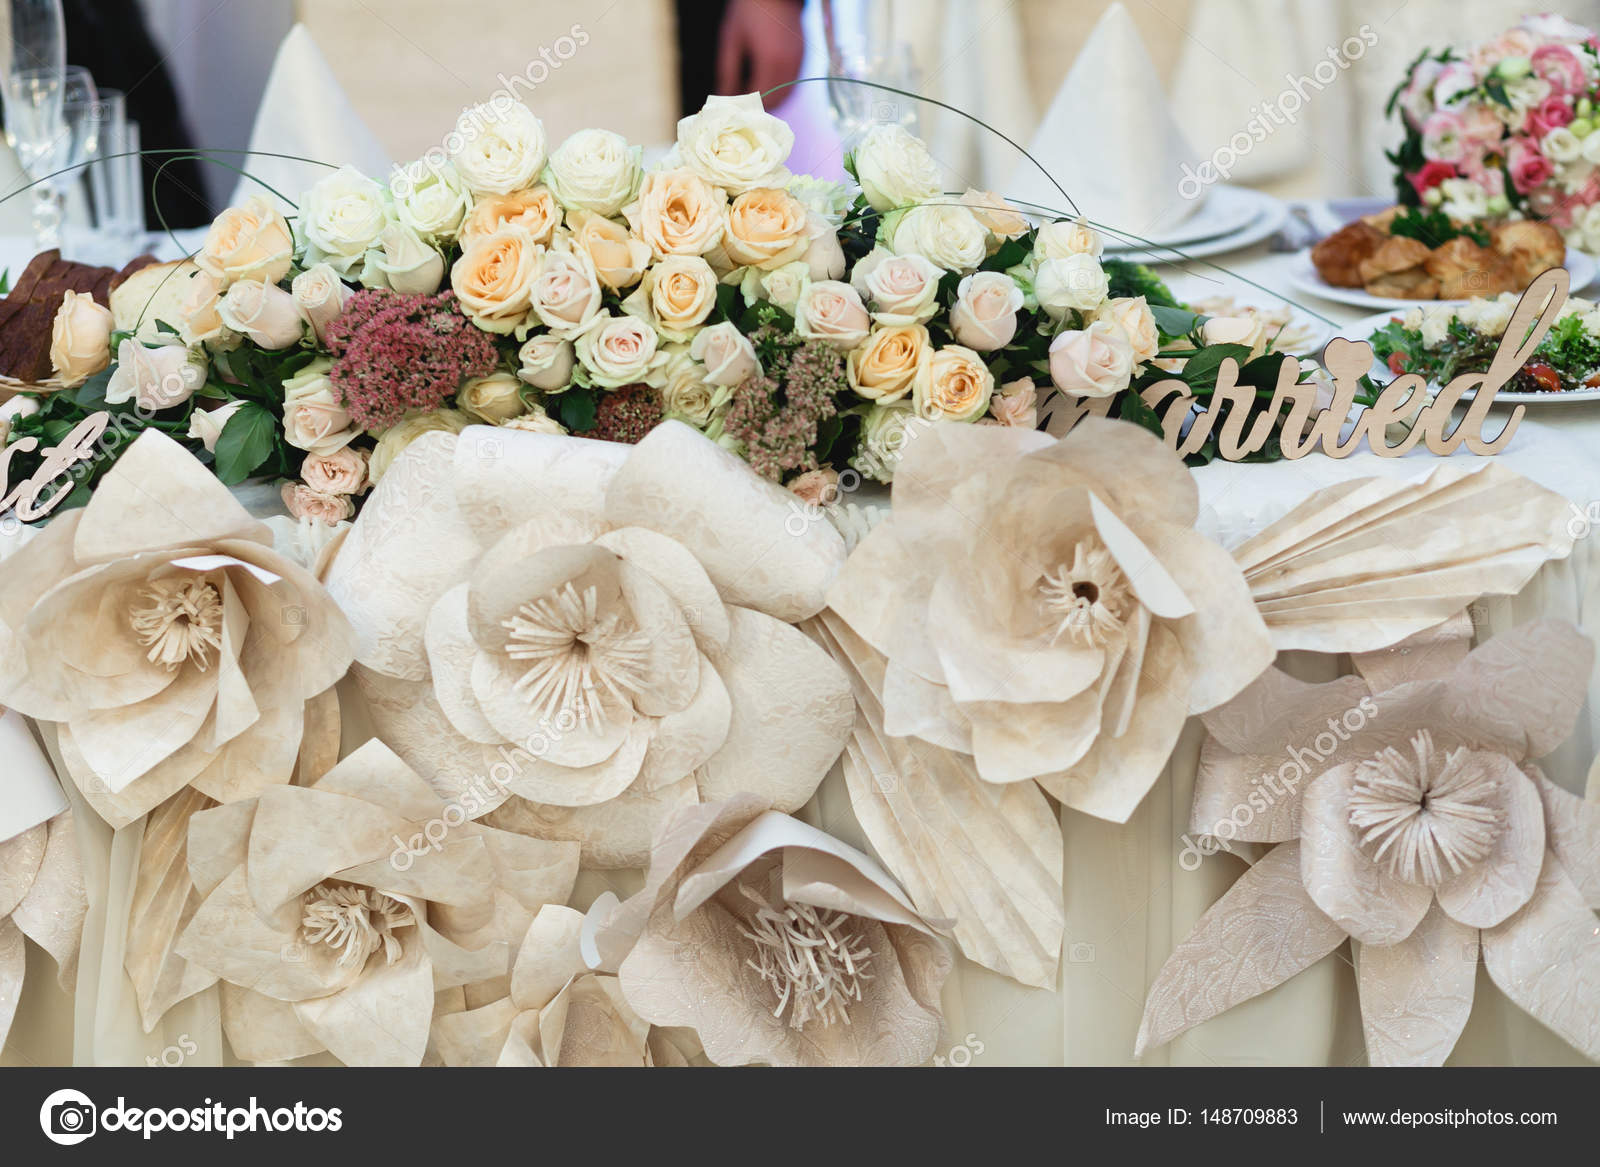 Beig Cloth Flowers As A Part Of Dinner Table Decoration Stock